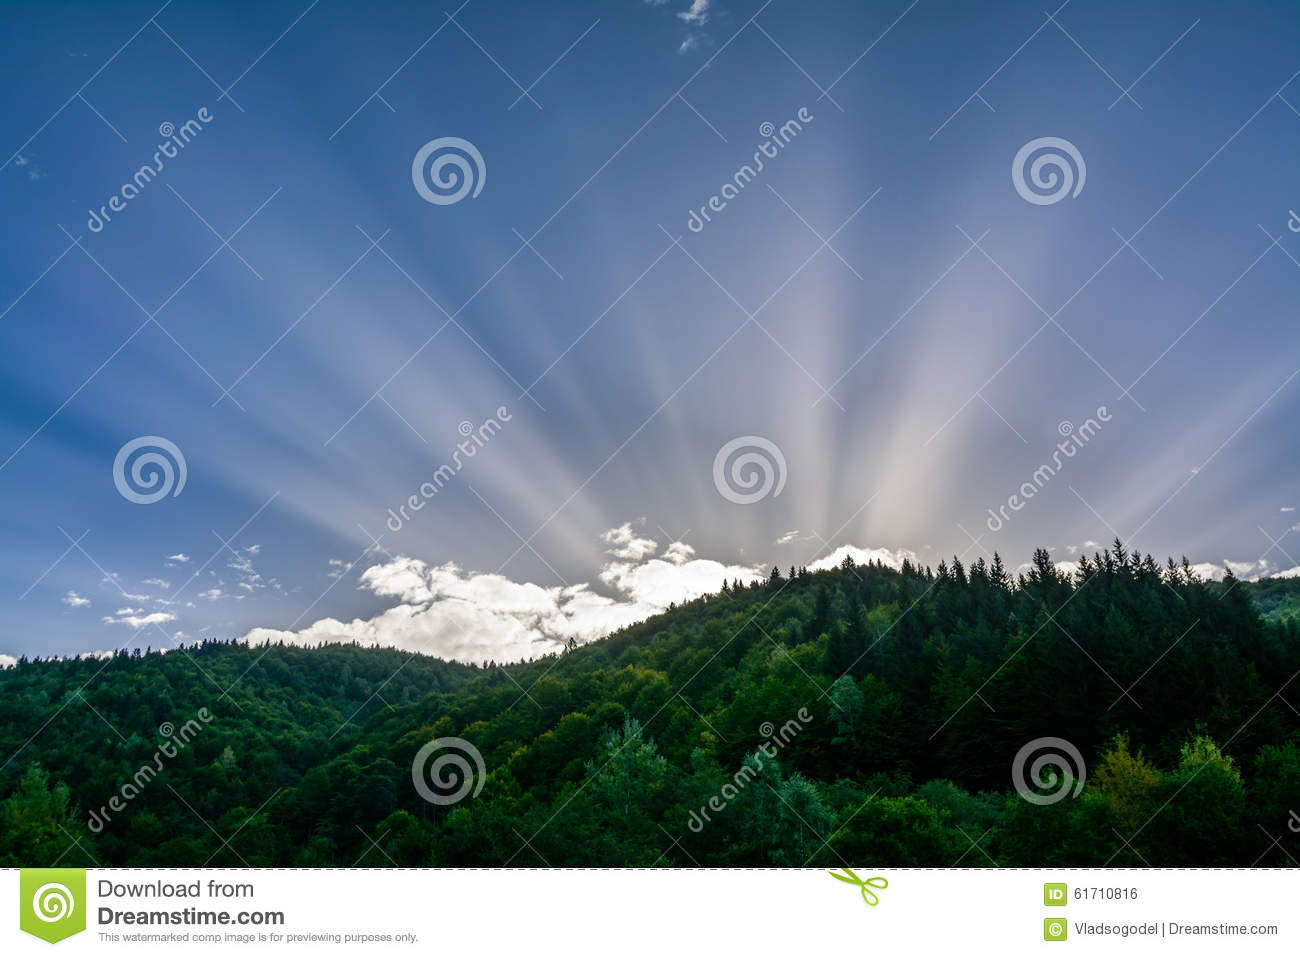 Rising sun on a background of the mountains. Horizontal colorful